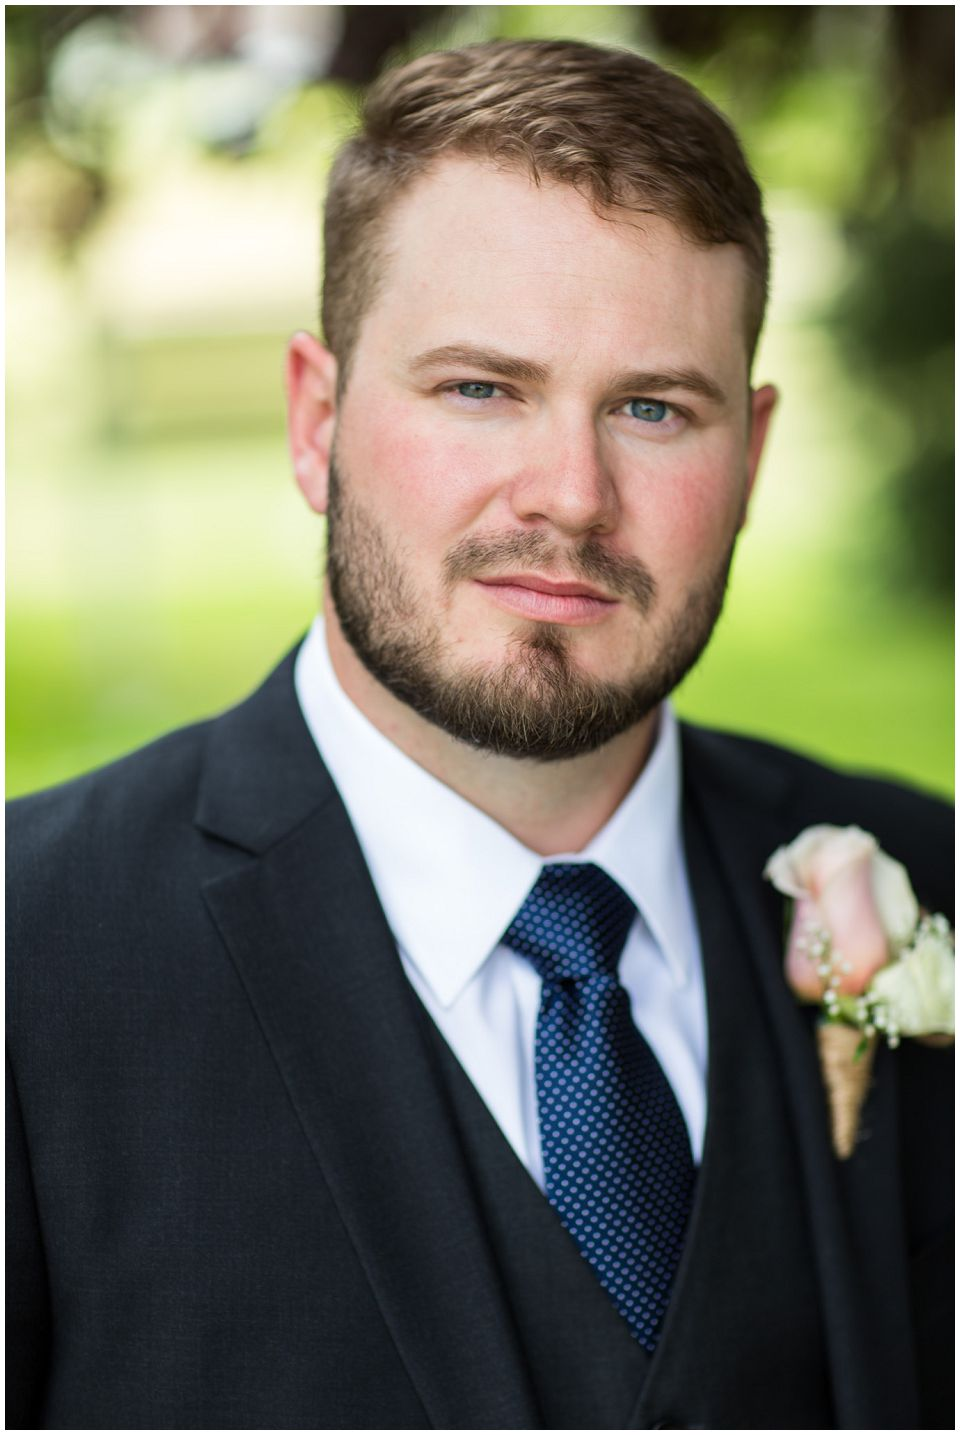 Groom portrait by an omaha photographer